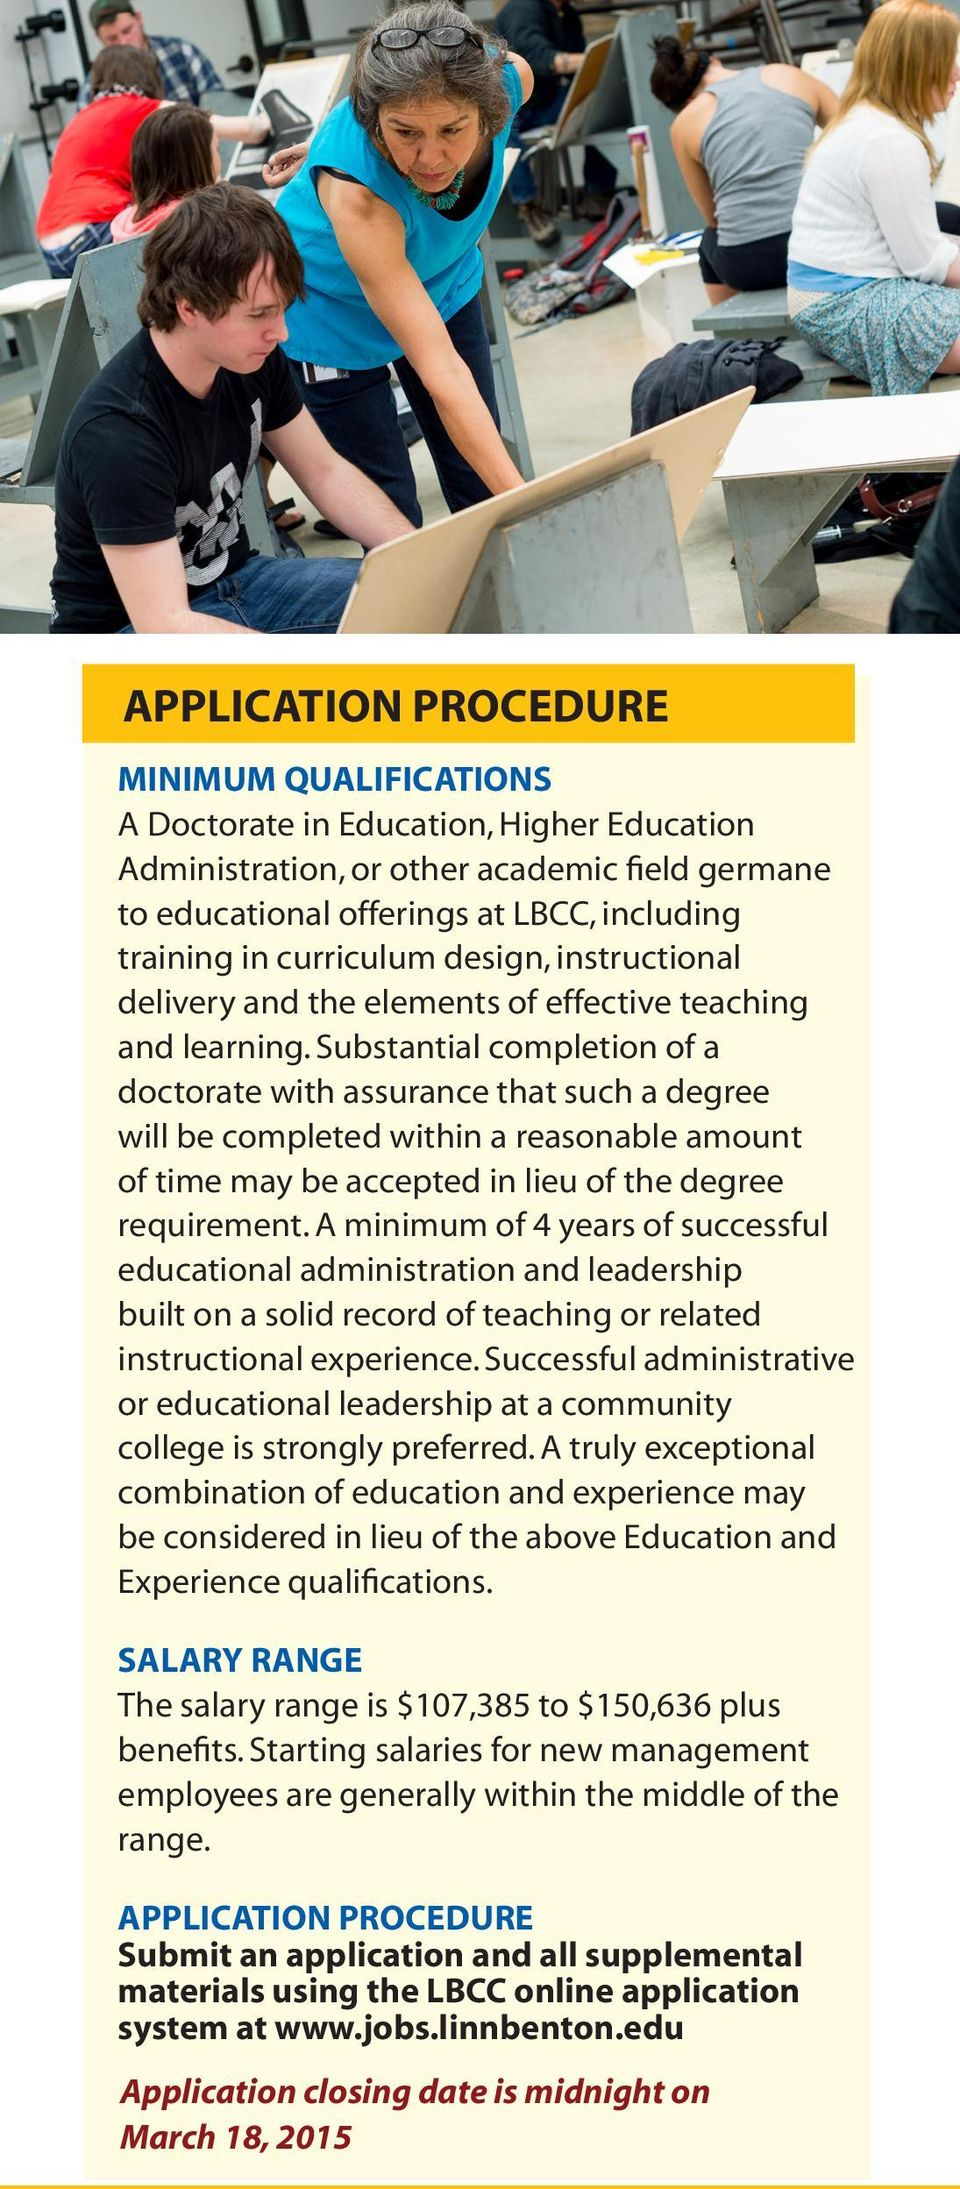 Substantial completion of a doctorate with assurance that such a degree will be completed within a reasonable amount of time may be accepted in lieu of the degree requirement.